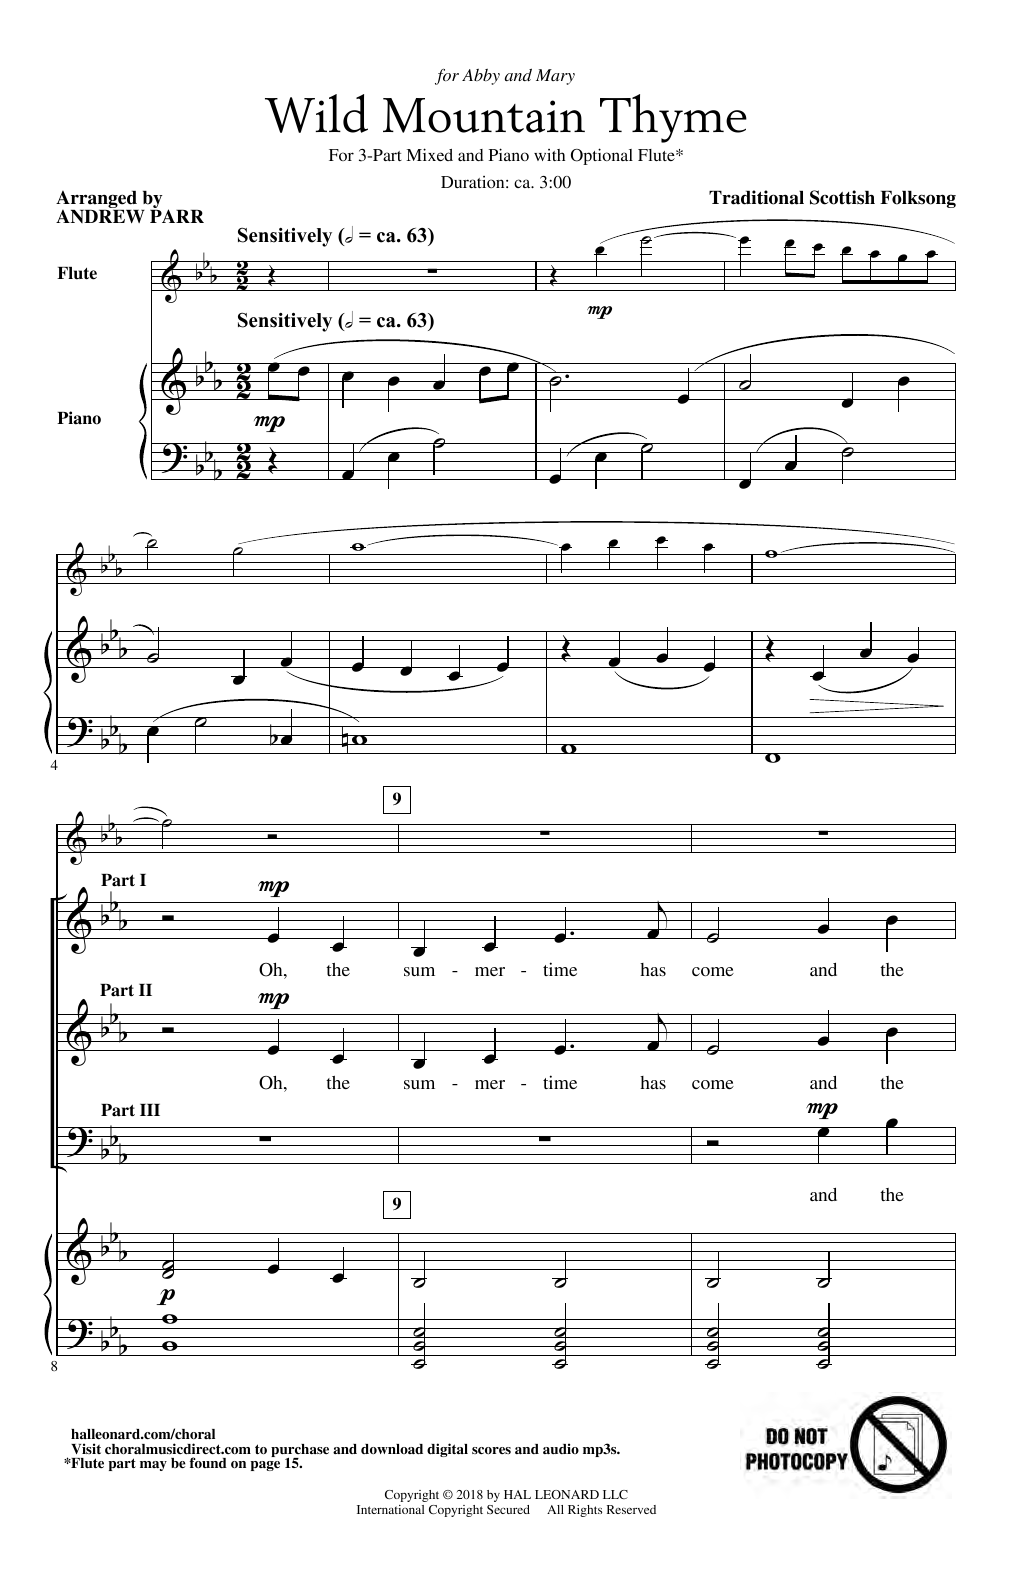 Traditional Scottish Folk Song Wild Mountain Thyme (arr. Andrew Parr) sheet music notes and chords